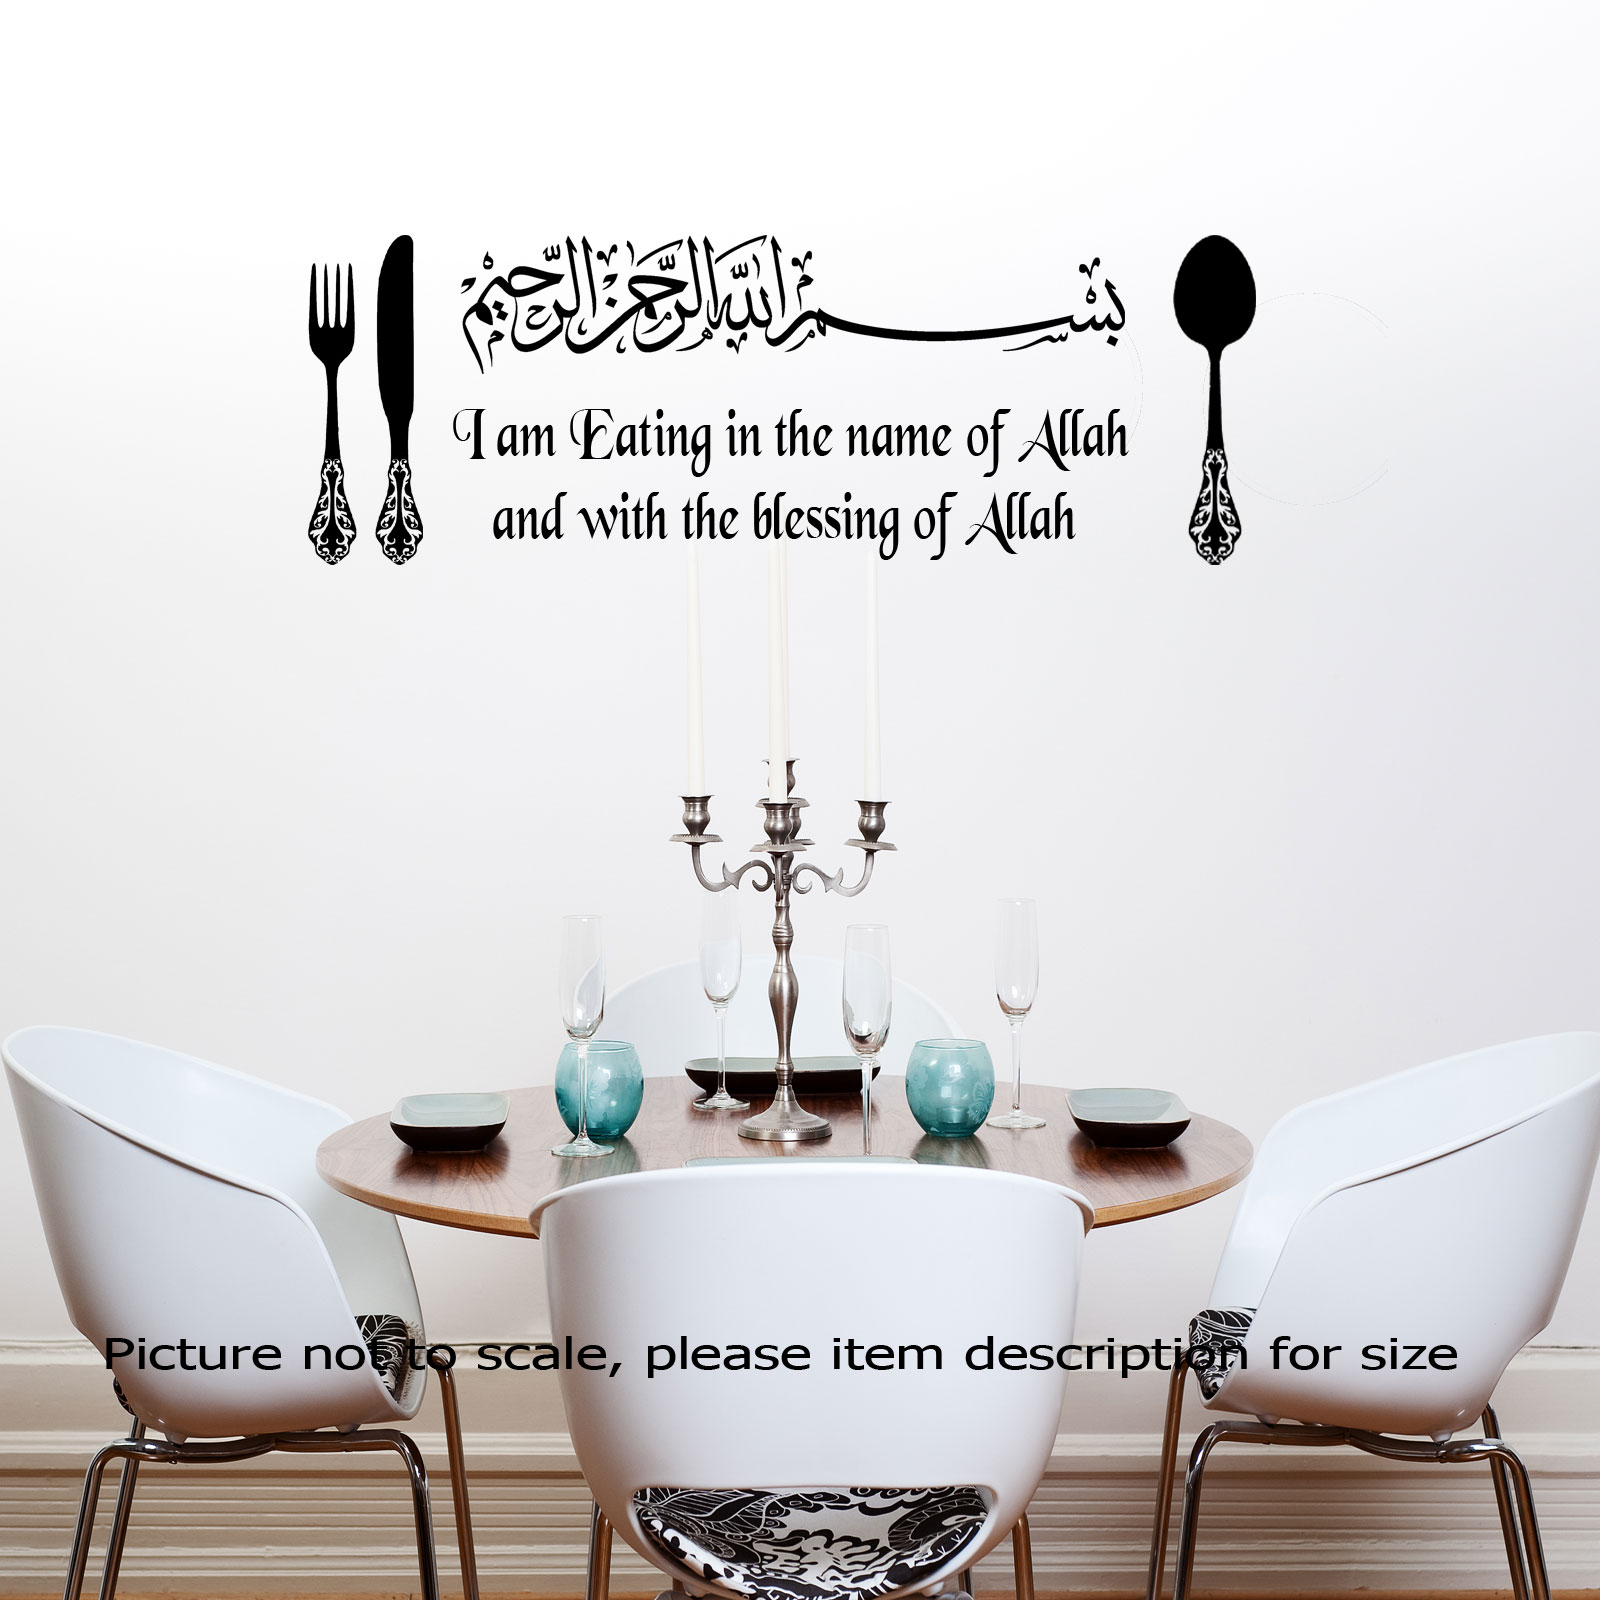 dining room islamic wall stickers i am eating with name of allah and in the blessing of allah. Black Bedroom Furniture Sets. Home Design Ideas